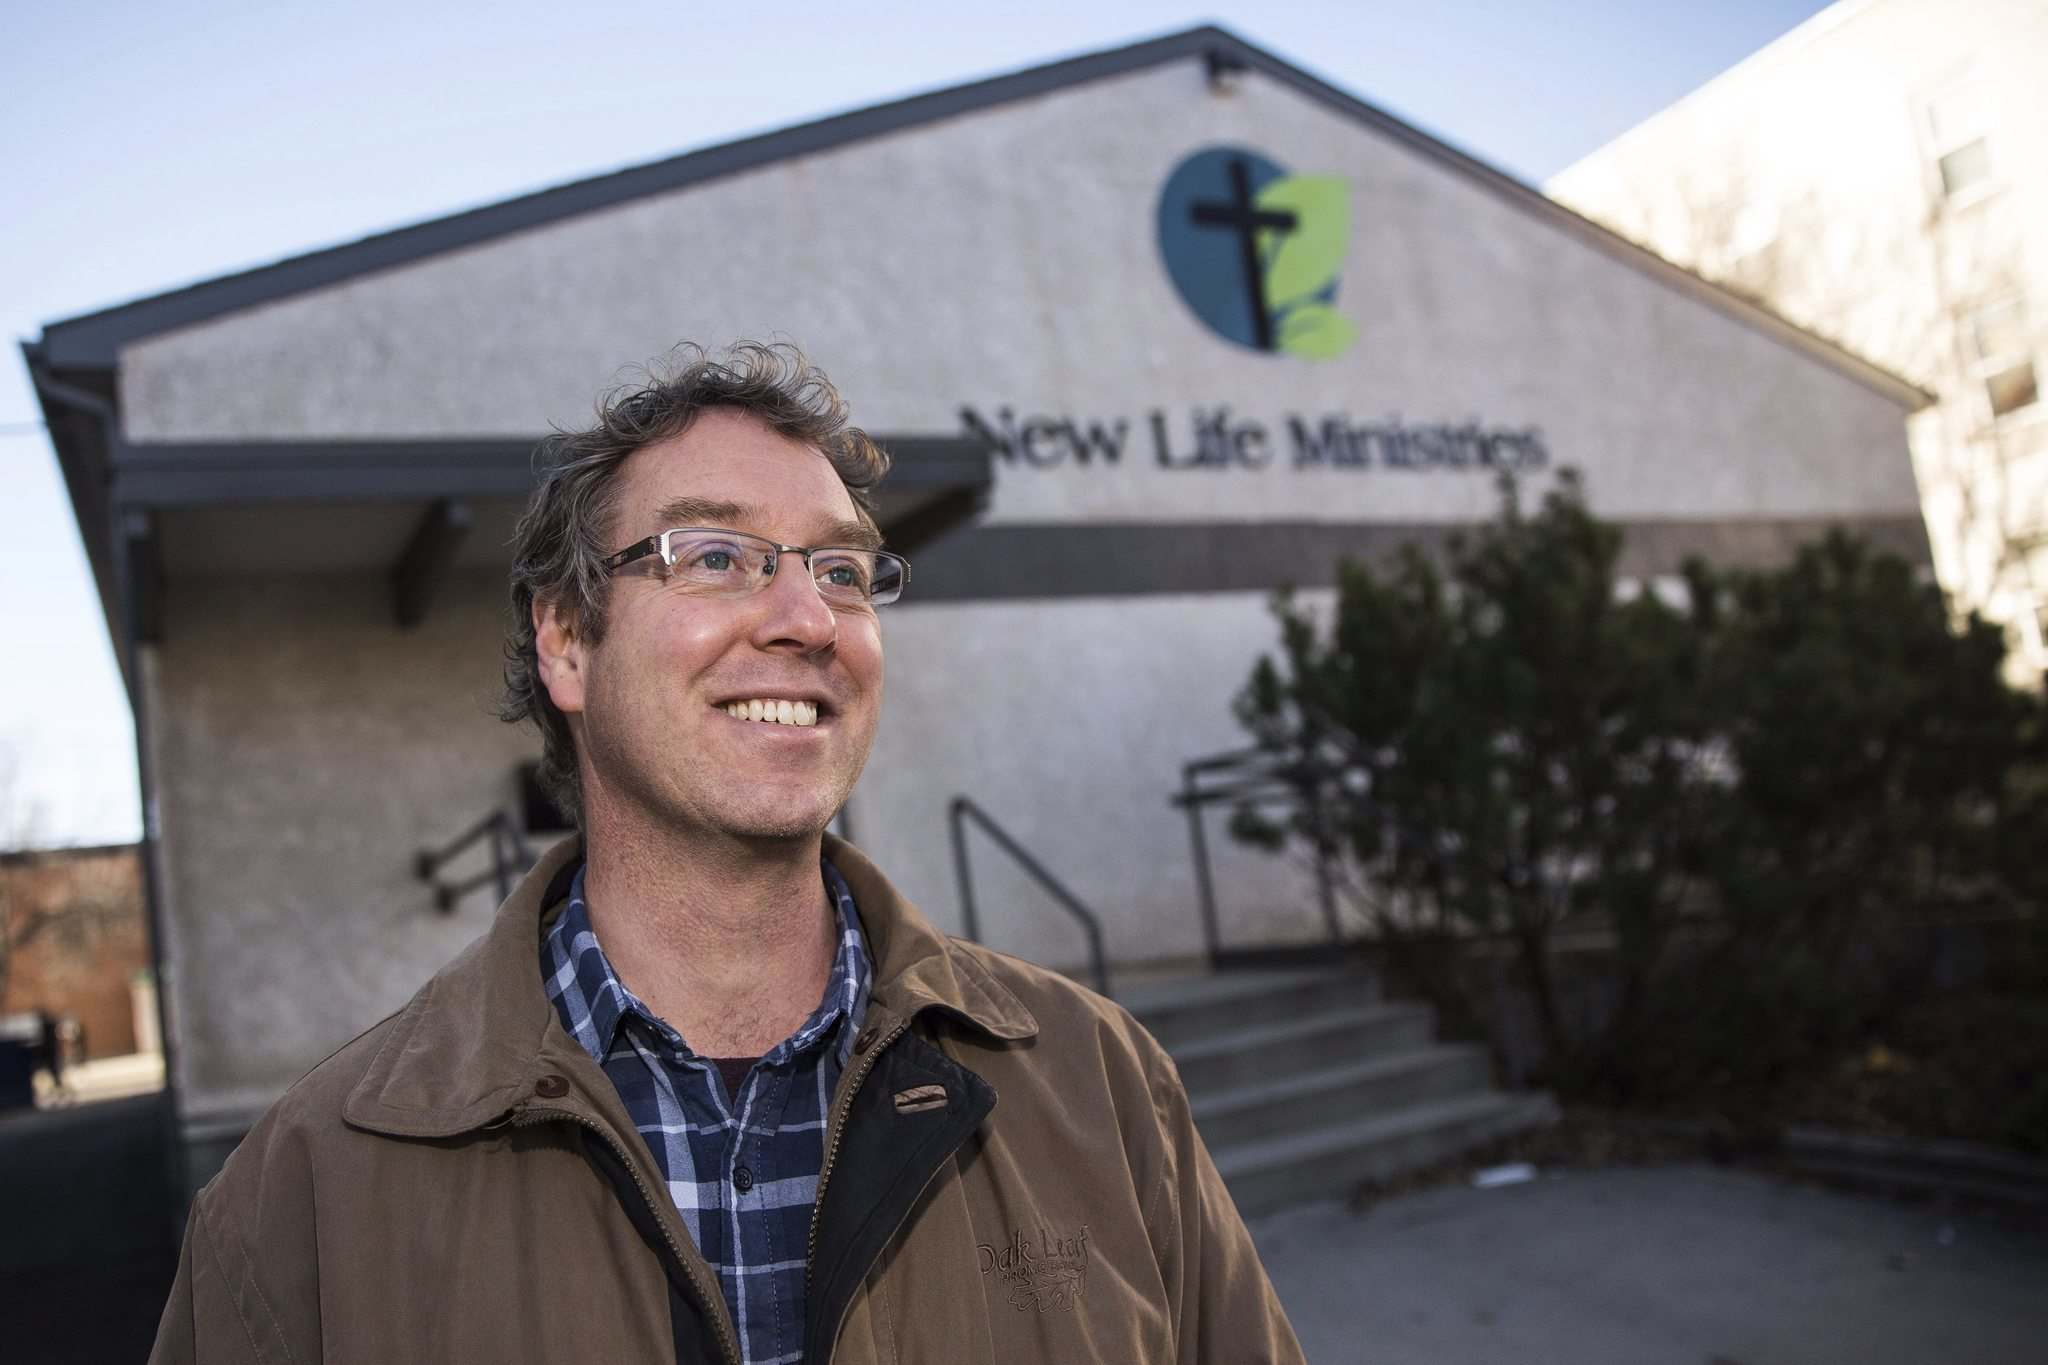 MIKE DEAL / WINNIPEG FREE PRESS</p><p>Following in Lehotsky&#39;s shoes now is Curtis Halbesma, current pastor of New Life Ministries. He started working there part time in 2011 and became full-time pastor in 2013.</p>